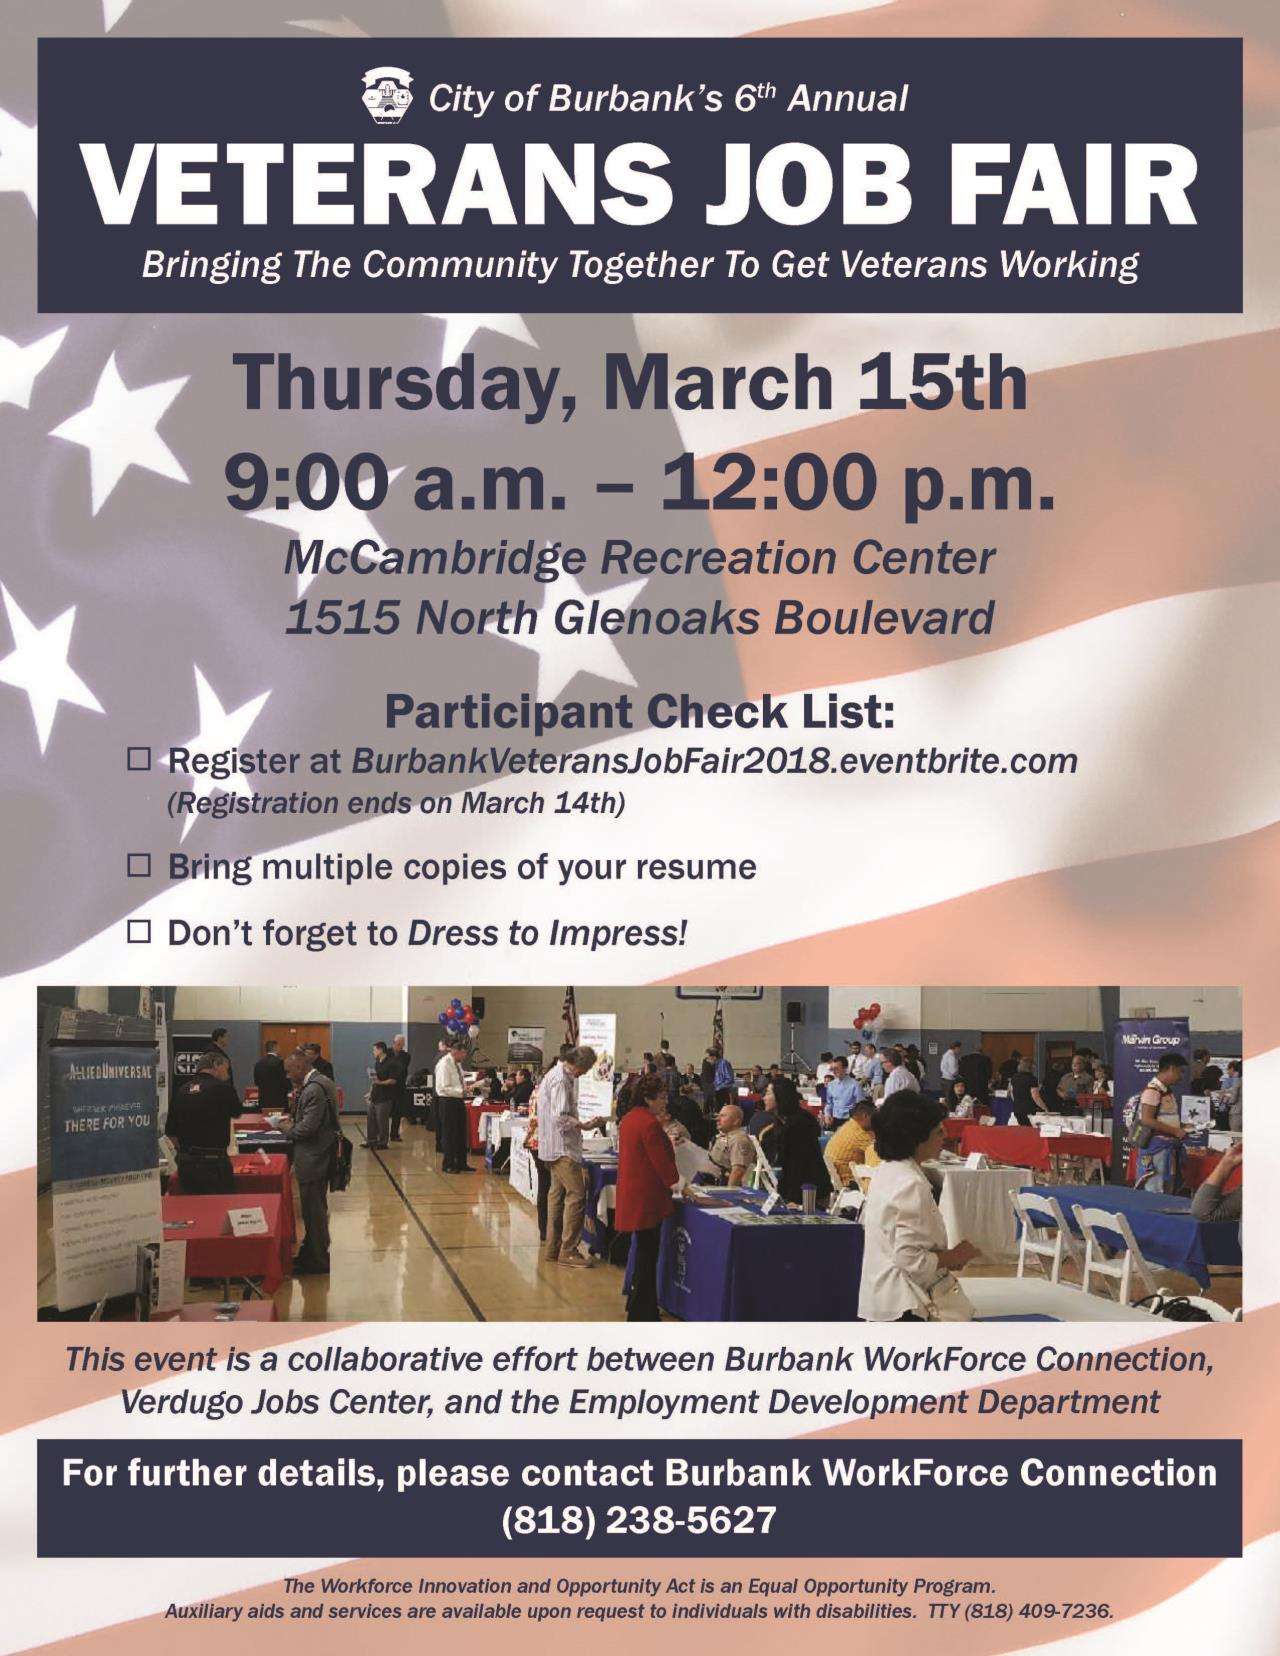 Veterans Job Fair Flyer 2018